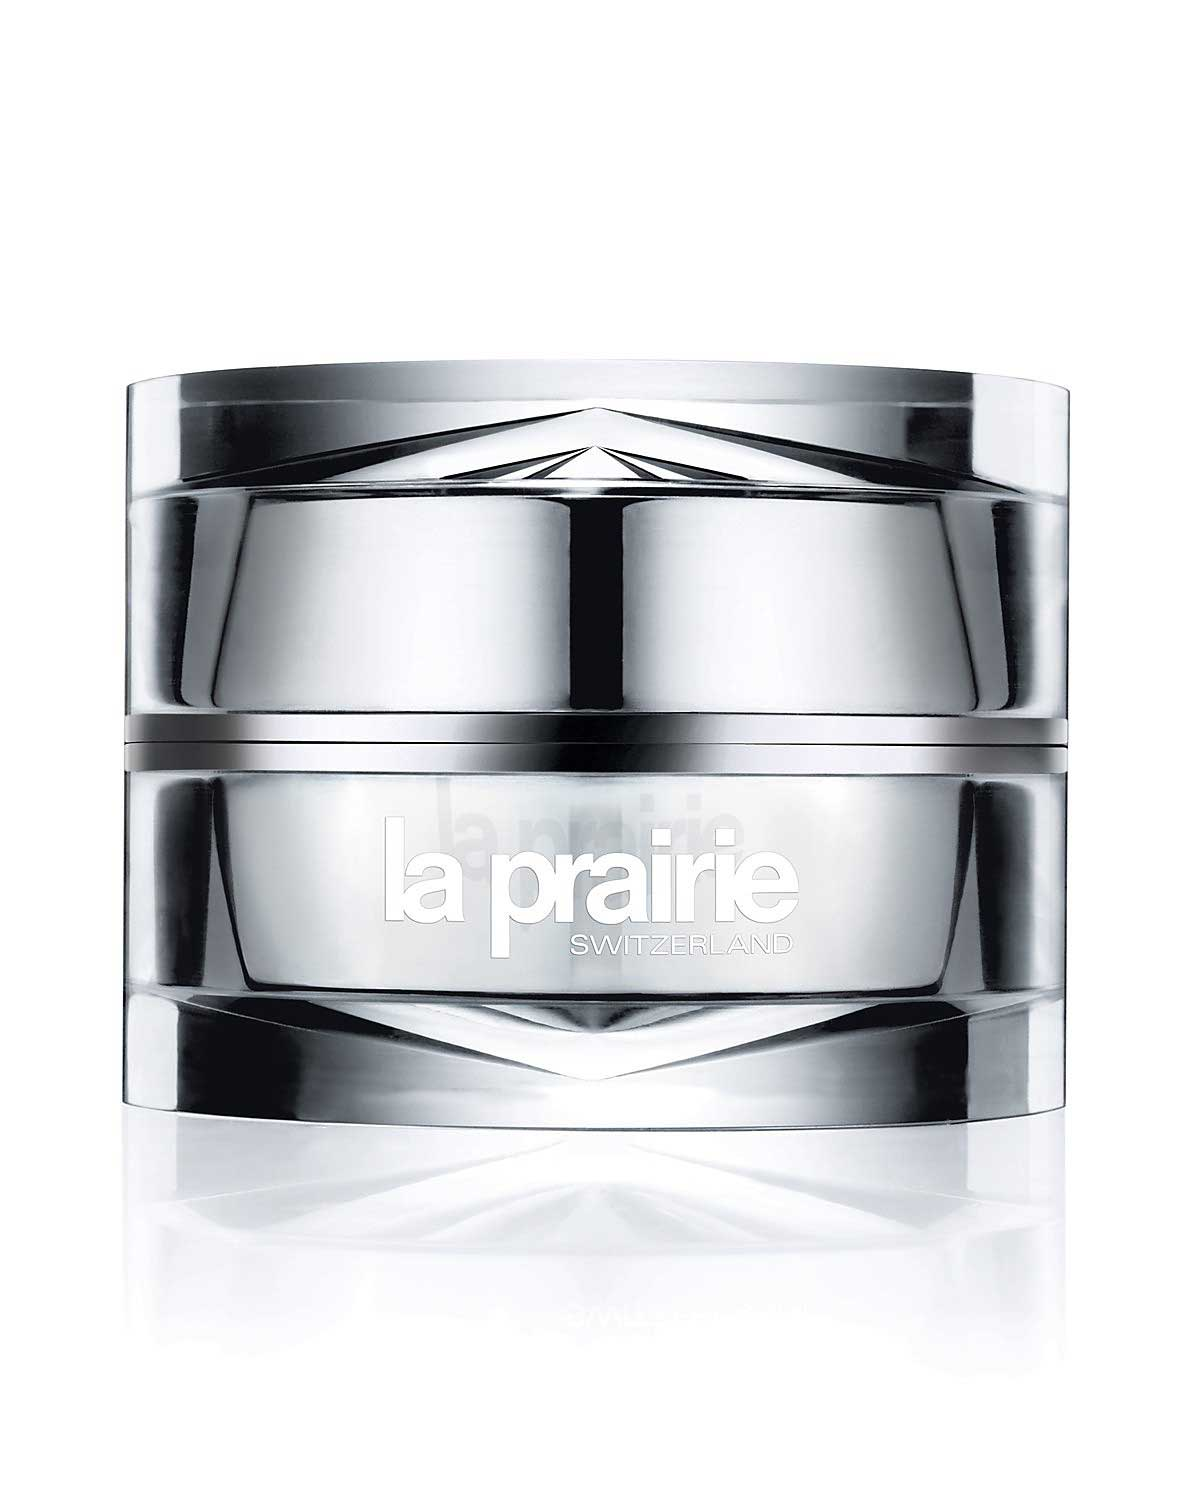 LA PRAIRIE Cellular_Cream_Platinum_Rare